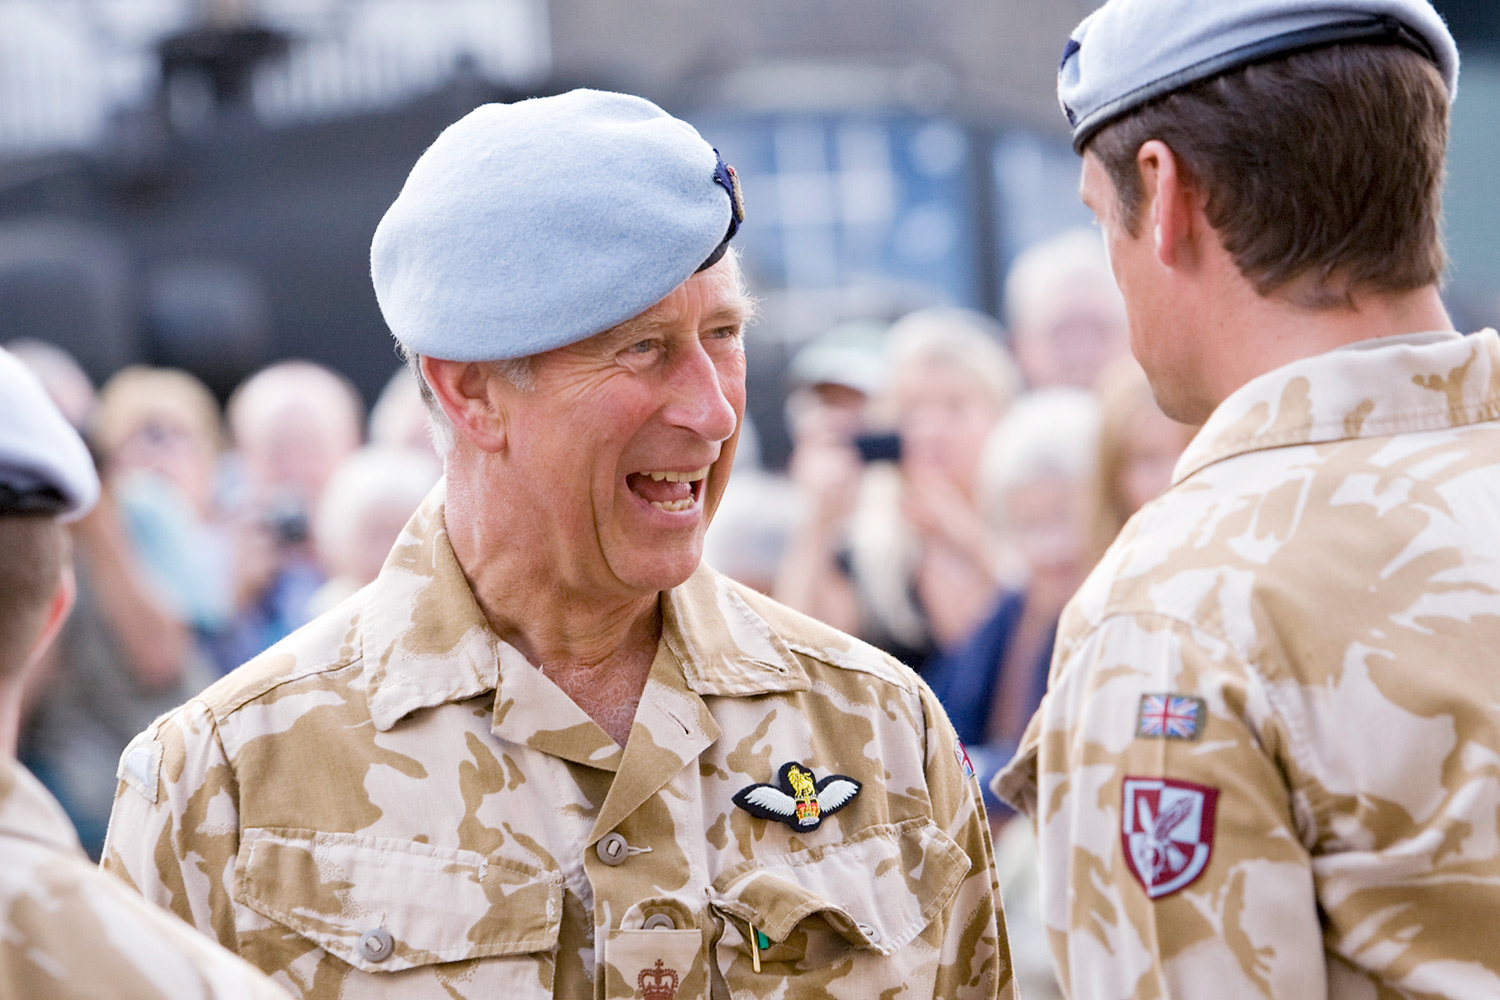 Prince Charles inspects RAF Regiment during visit to Bury S Edmunds. Photo: Keith Mindham